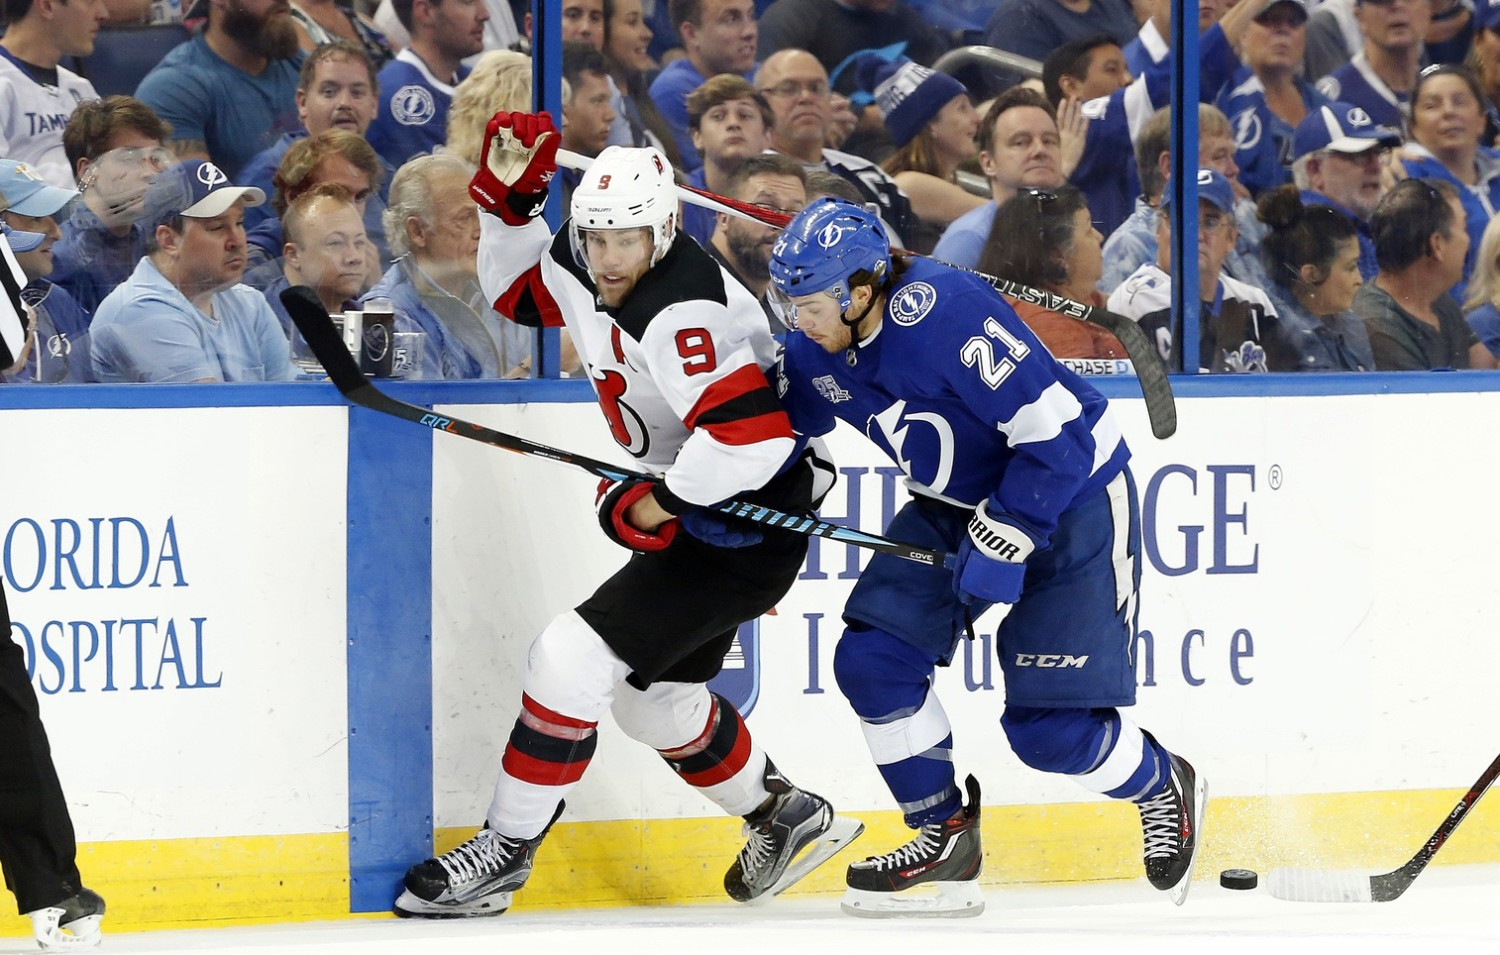 The Tampa Bay Lightning plan to have Brayden Point signed by training camp. Devils coach visits Taylor Hall